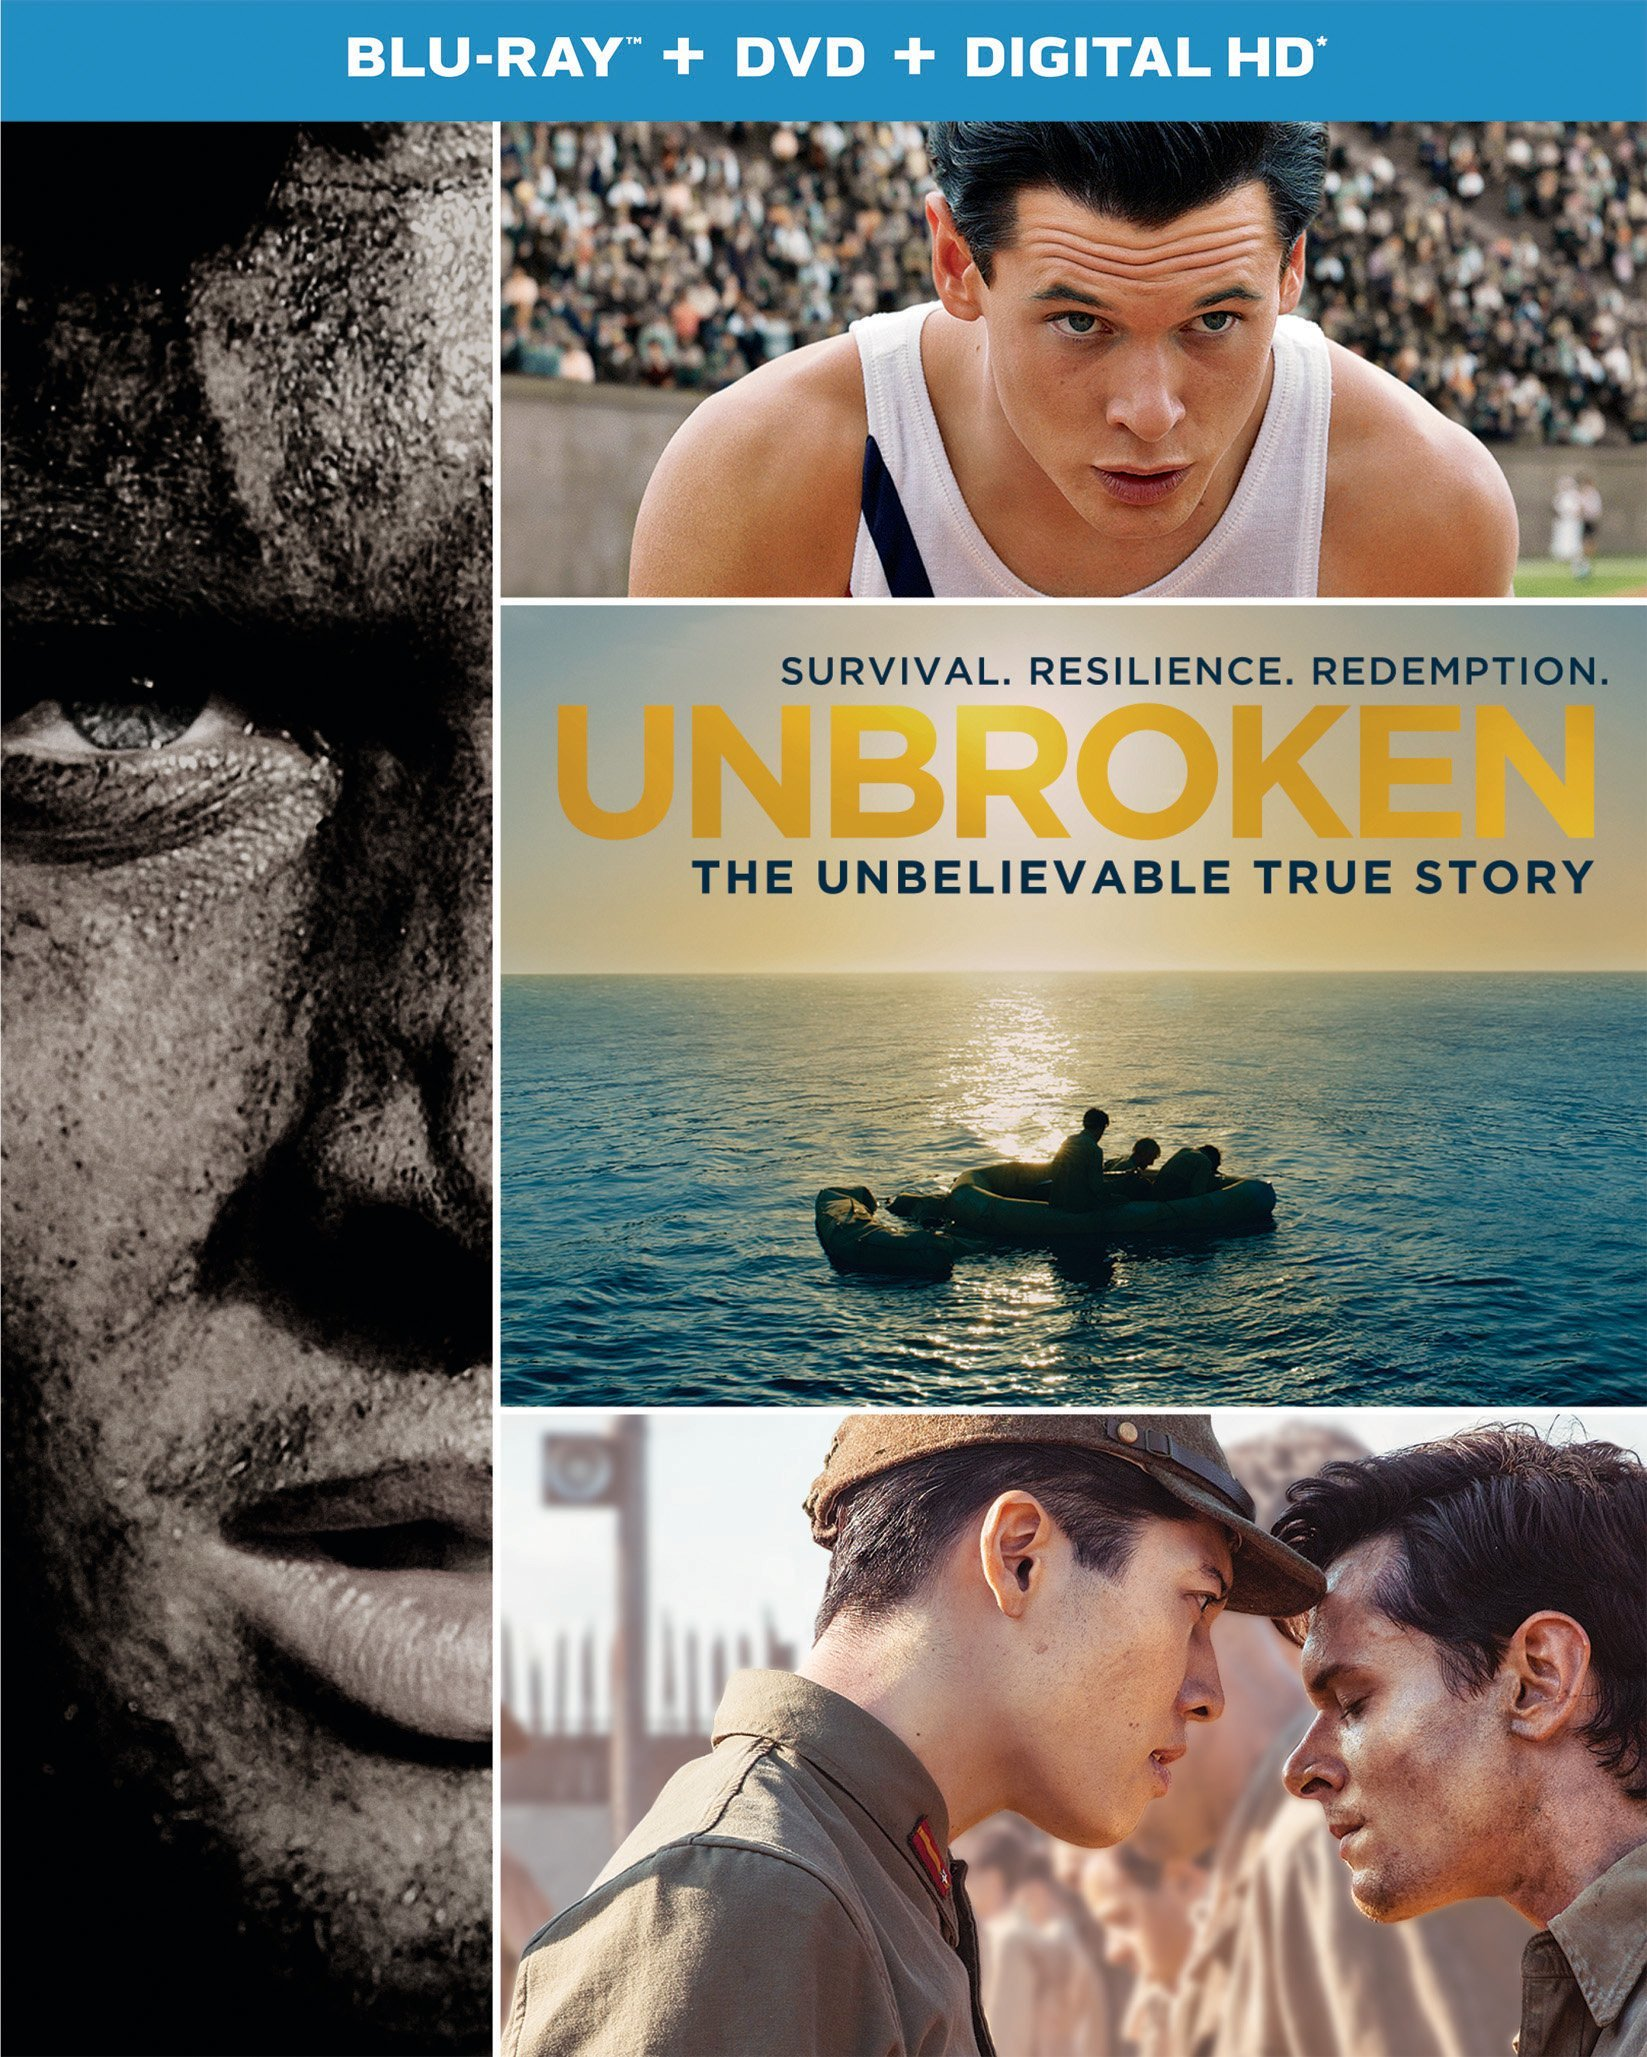 Unbroken Blu-ray Review